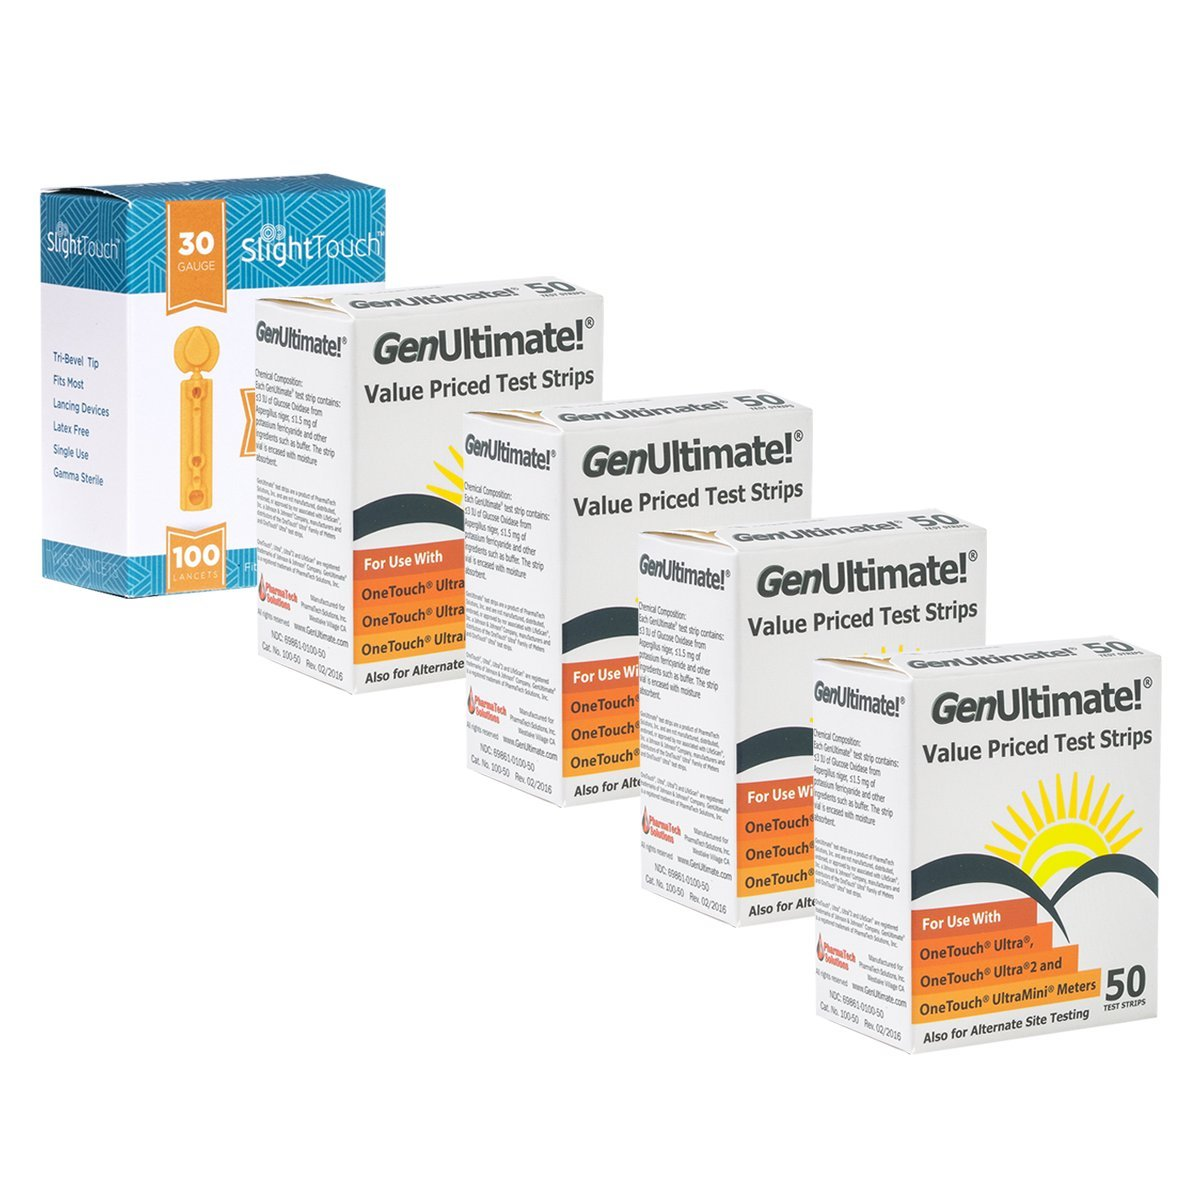 GenUltimate Blood Glucose Test Strips For Use with One Touch Ultra Meters - 200 Strips With 100 Slight Touch Lancets